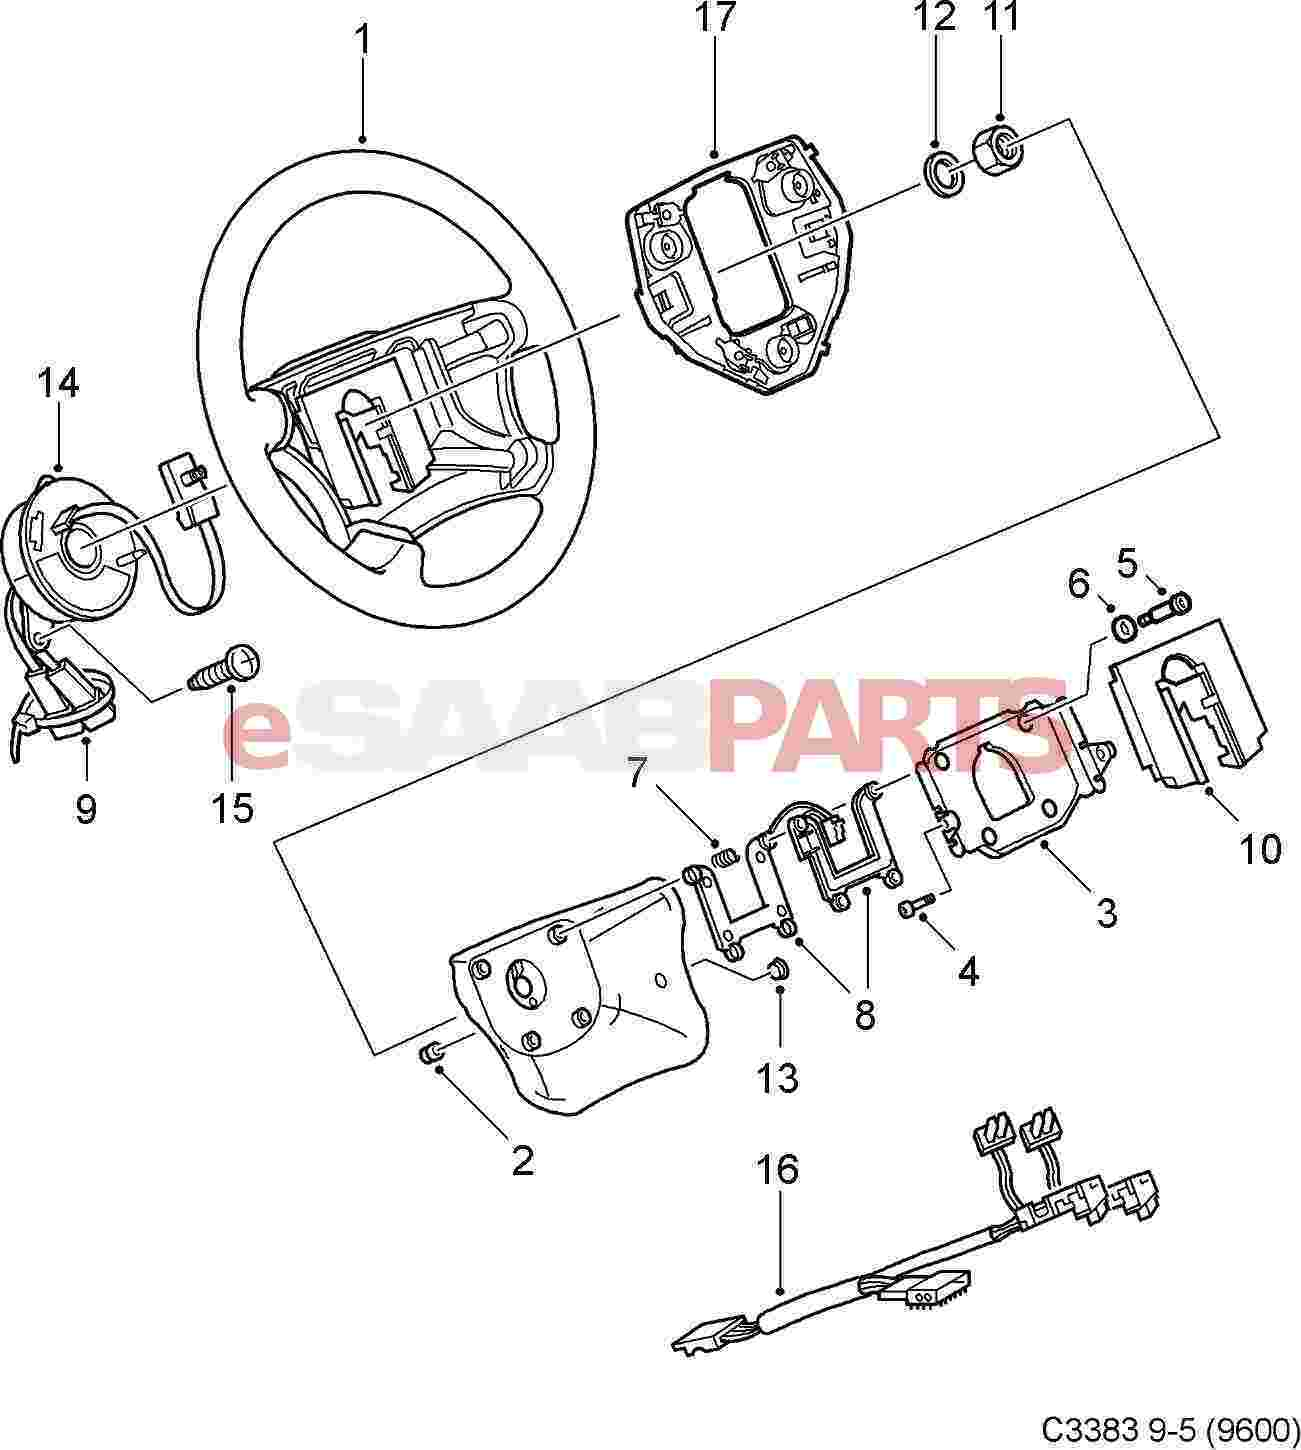 steering wheel parts diagram and there labeled microscope for what 12758902 saab leather 9 5 aero